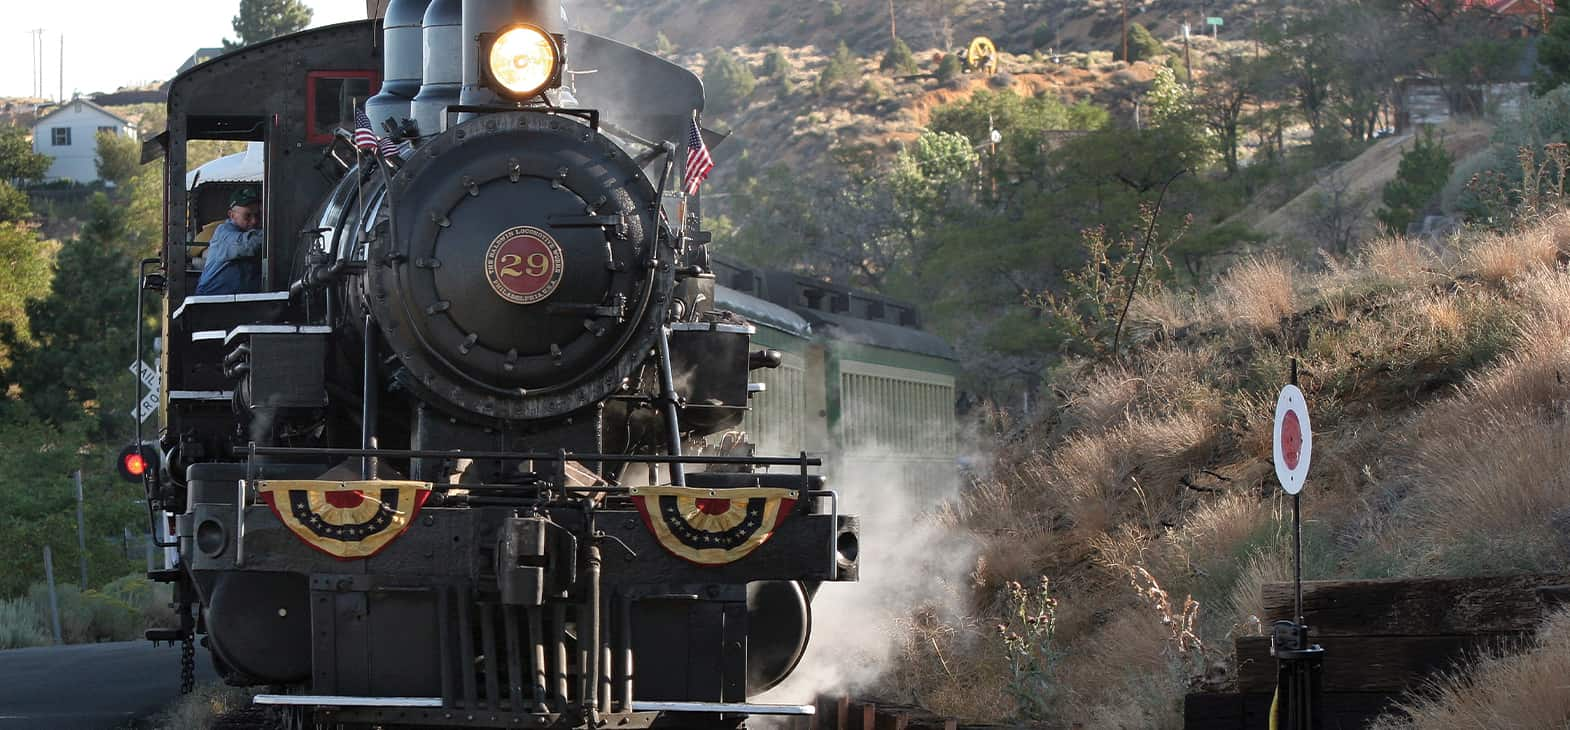 V&T Railway Carson City to Virginia City